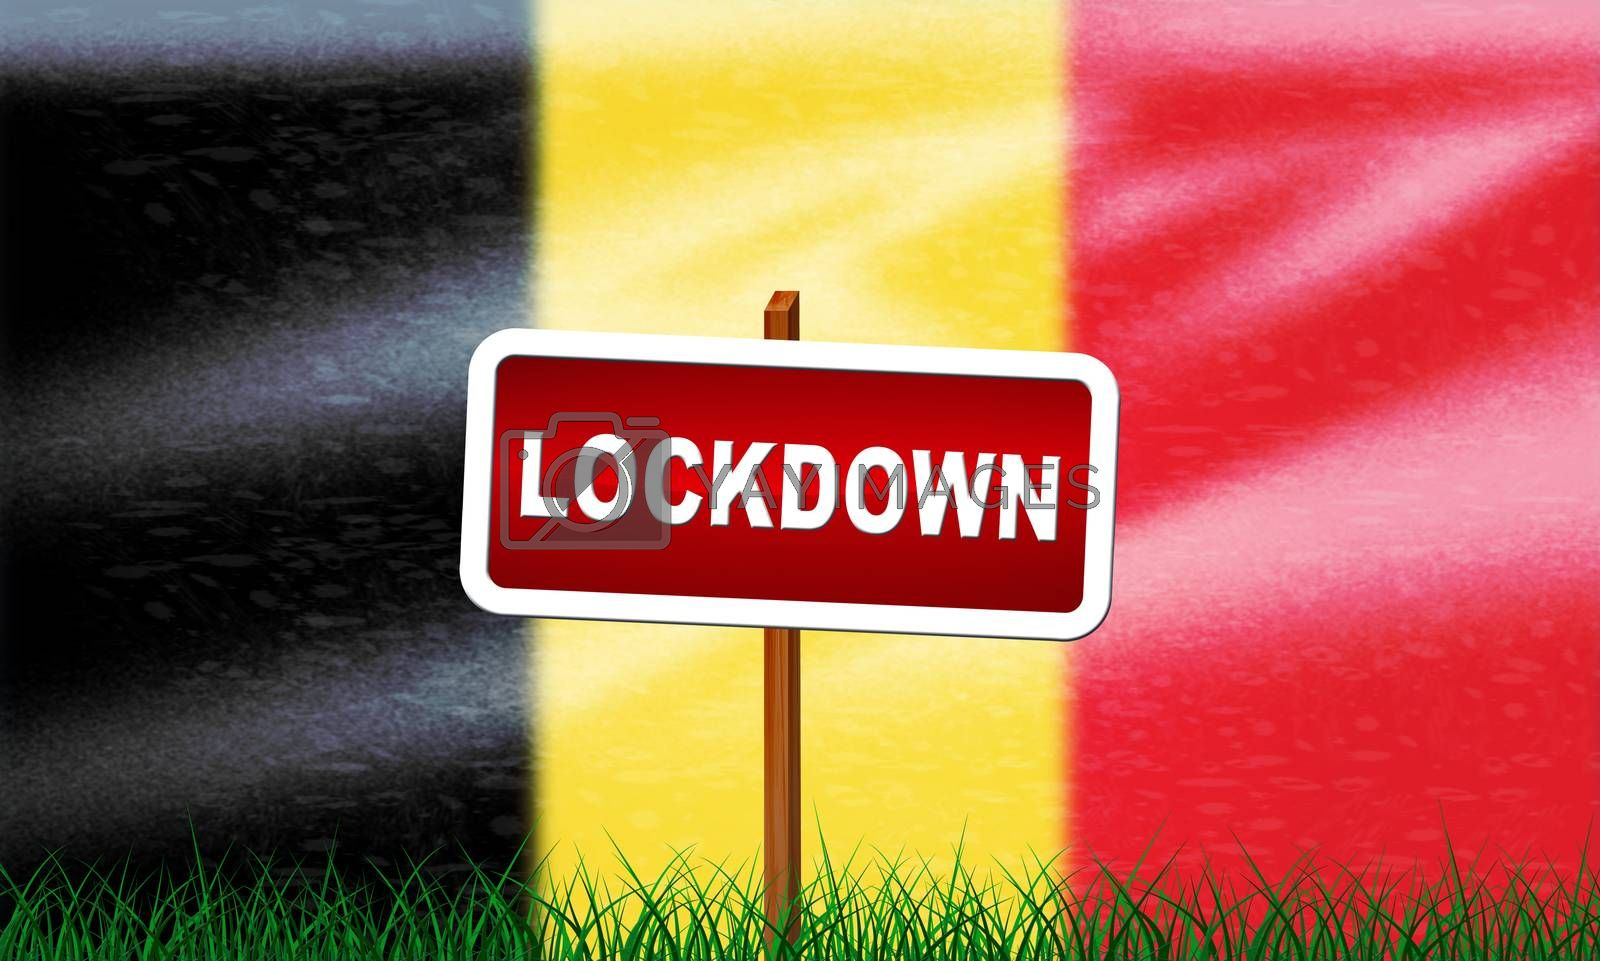 Belgium lockdown preventing coronavirus epidemic or outbreak. Covid 19 belgian precaution to lock down disease infection - 3d Illustration